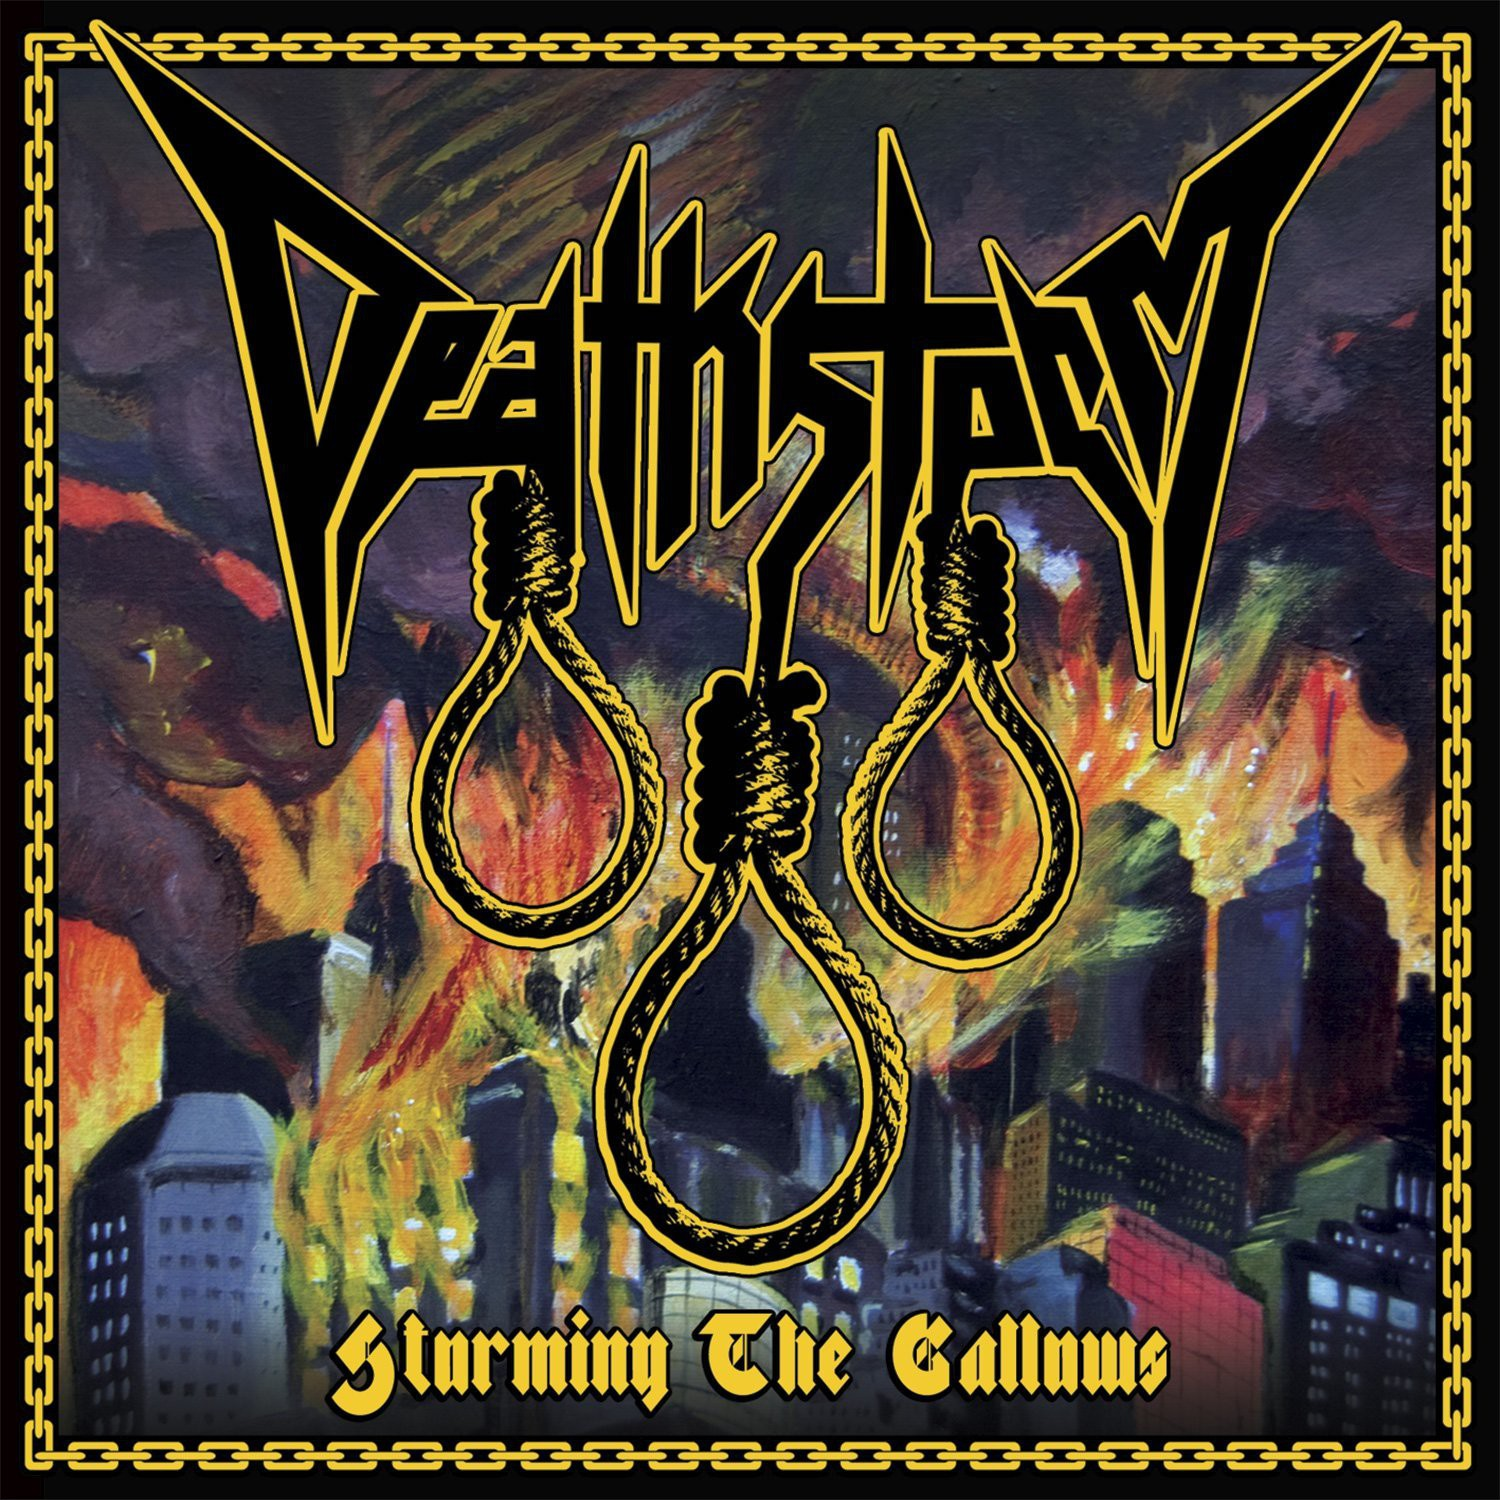 Deathstorm – Storming The Gallows